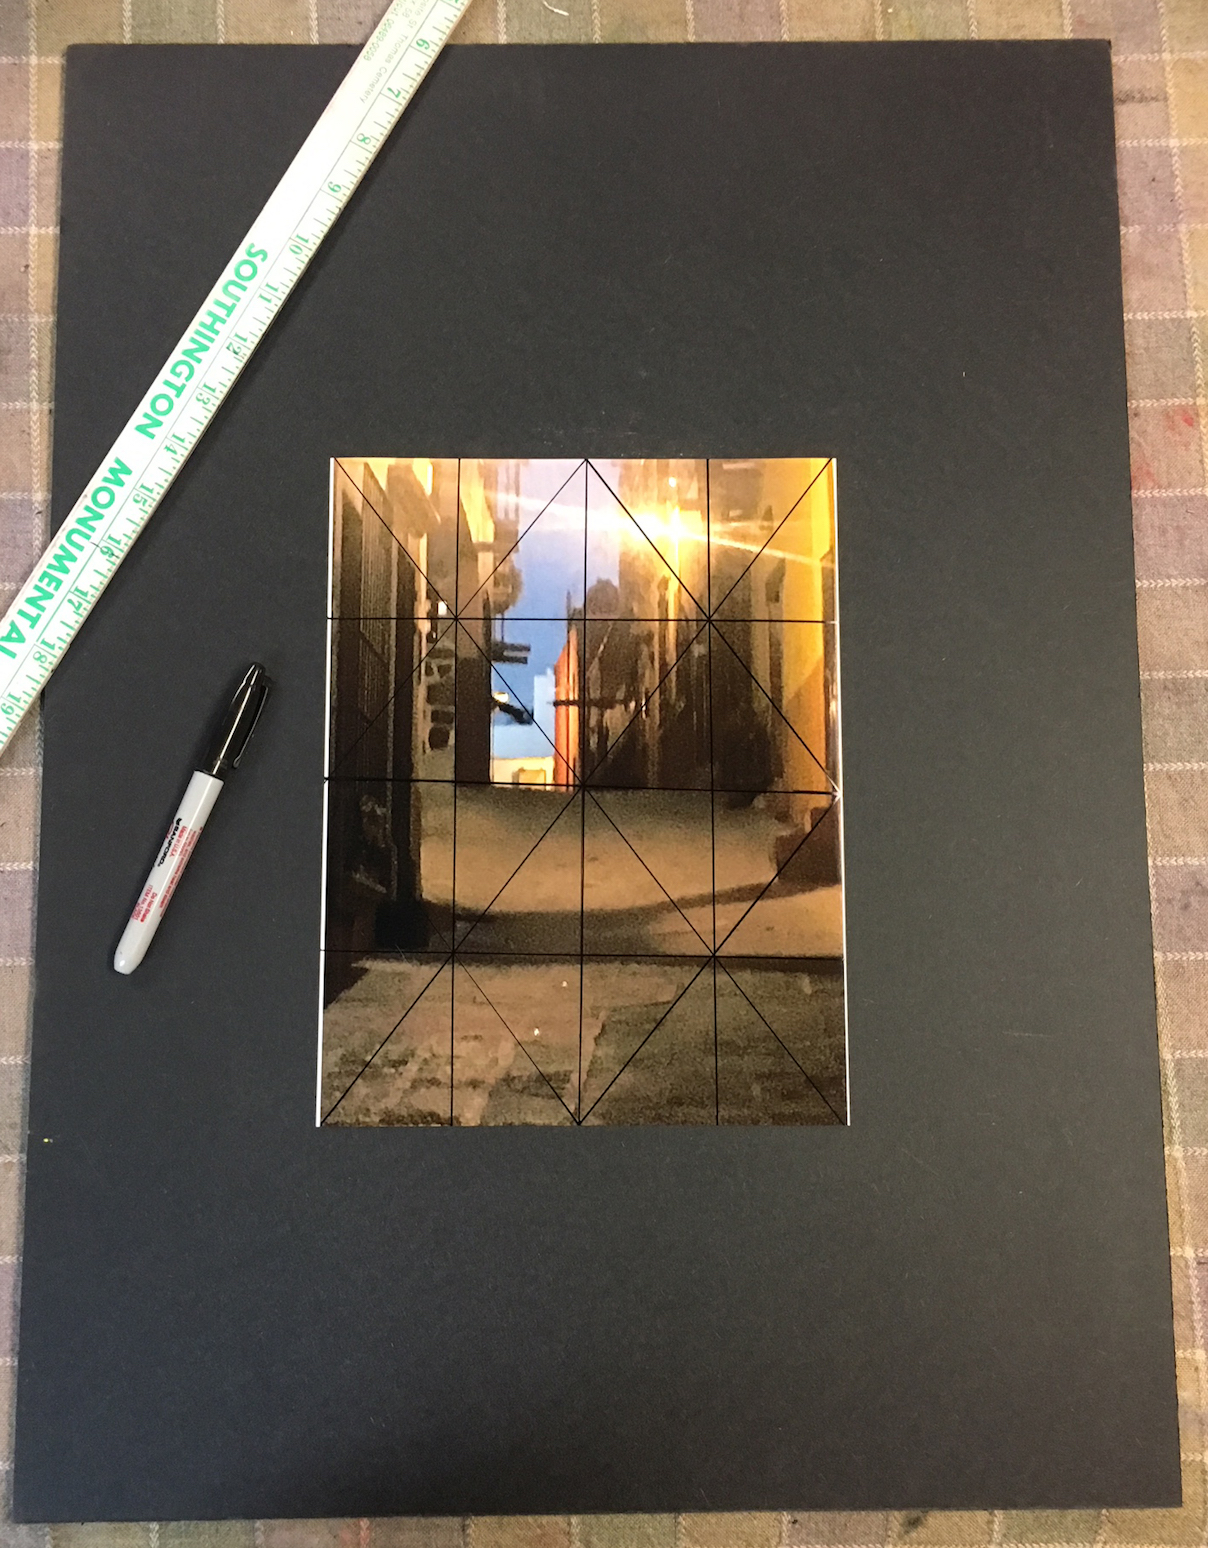 Chris Ivers: Step 9. The grid drawn on the colour photo